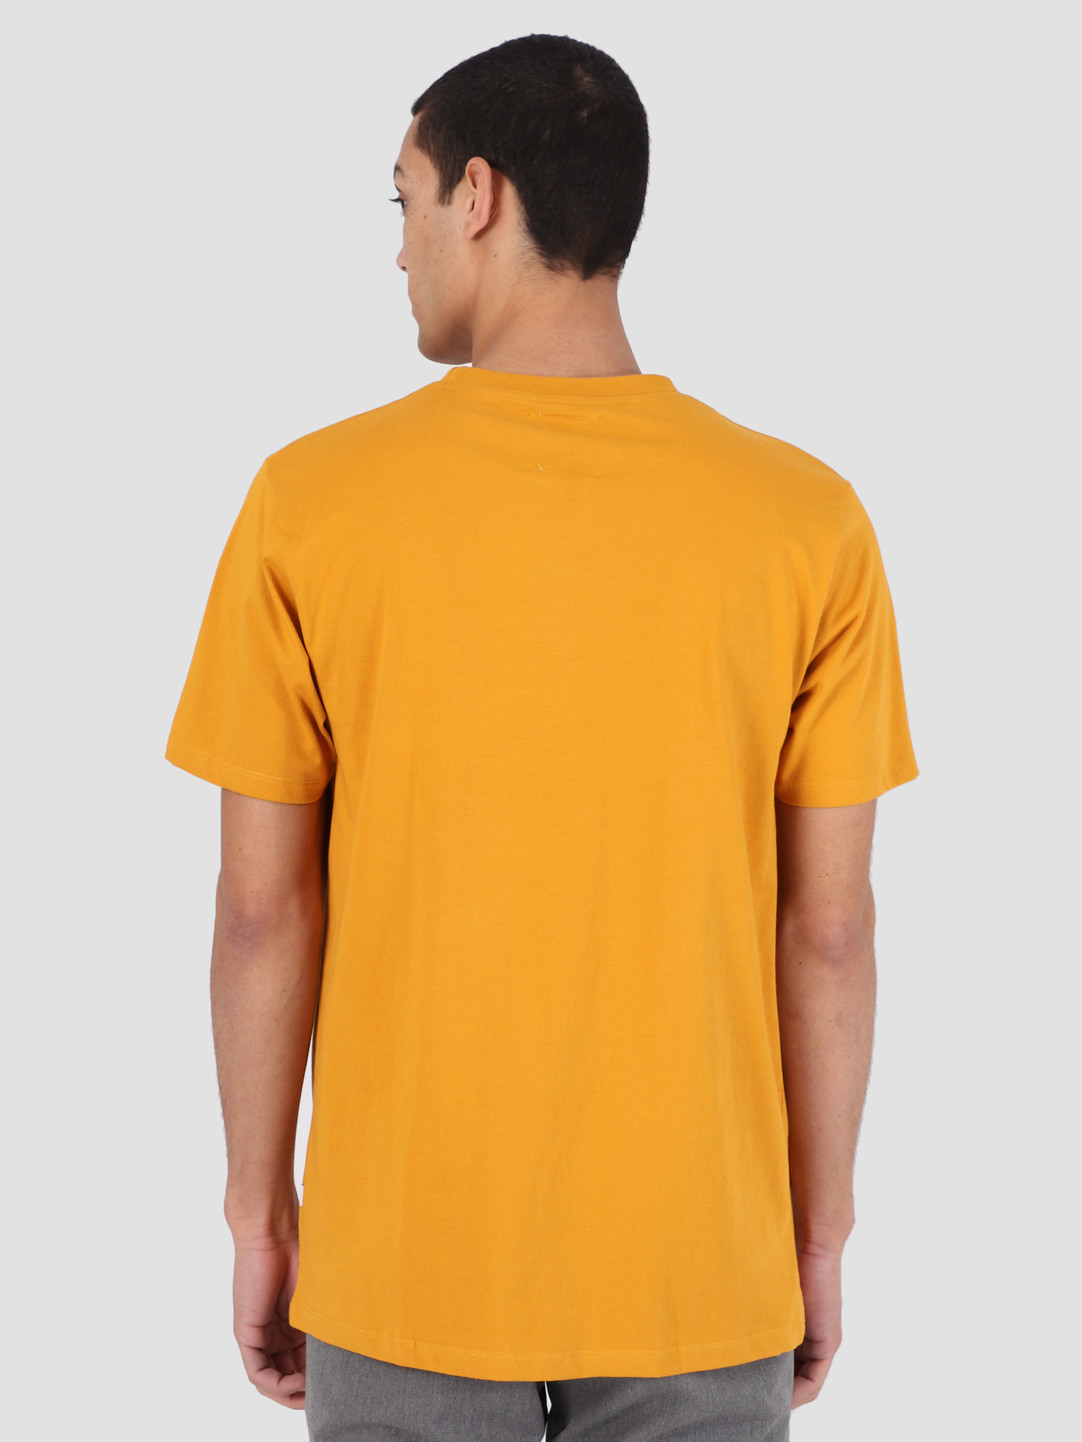 Quality Blanks Quality Blanks QB03 Patch Logo T-Shirt Mustard Yellow